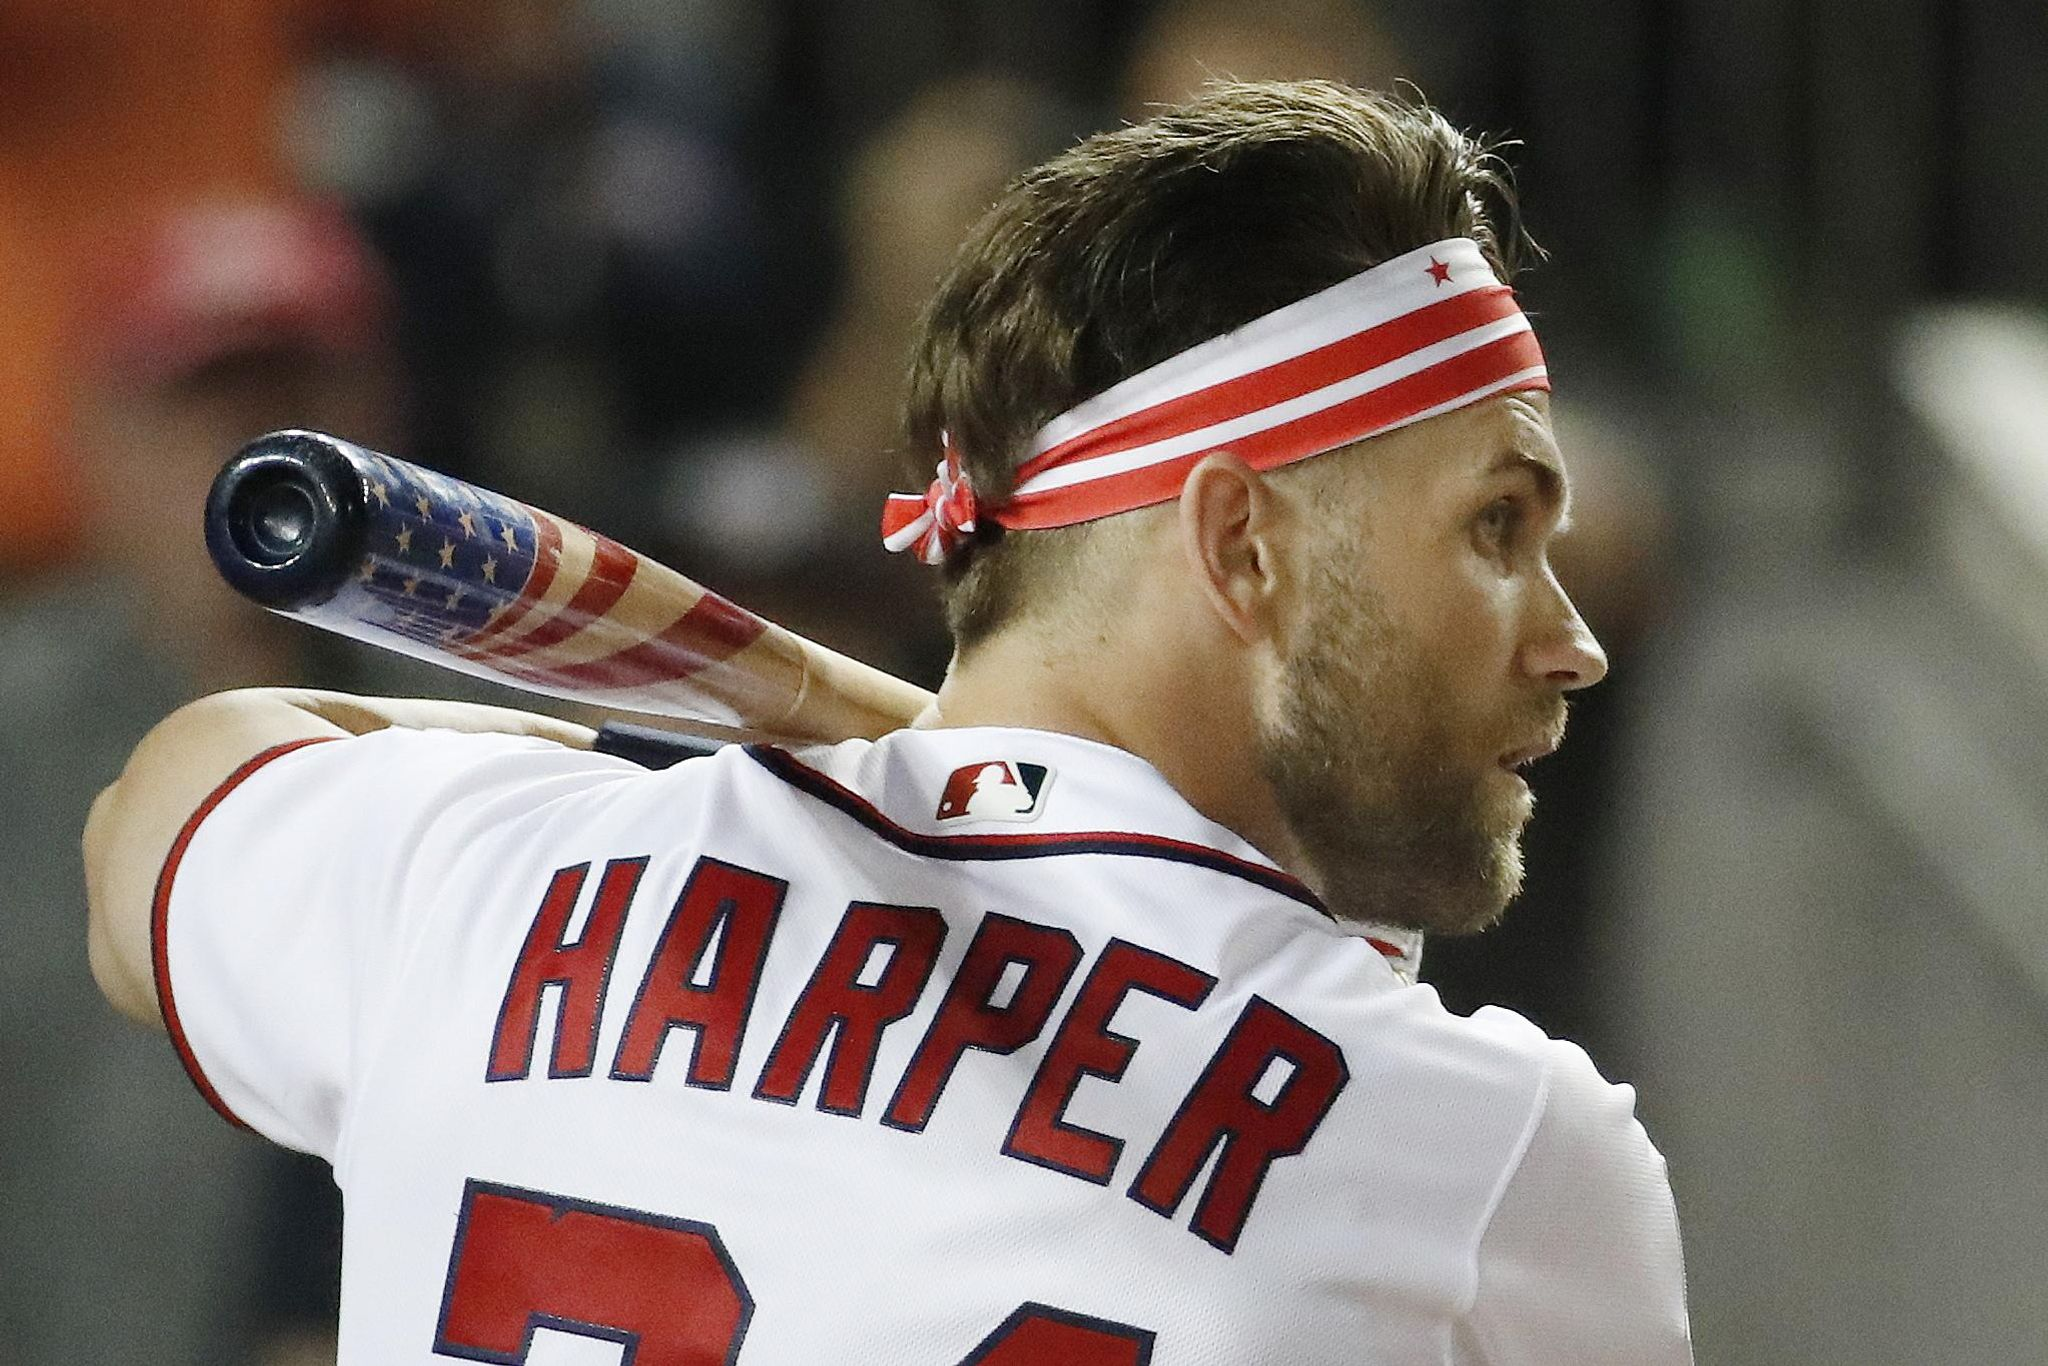 Nationals owner Mark Lerner hasn't heard from Bryce Harper in 'a couple months'